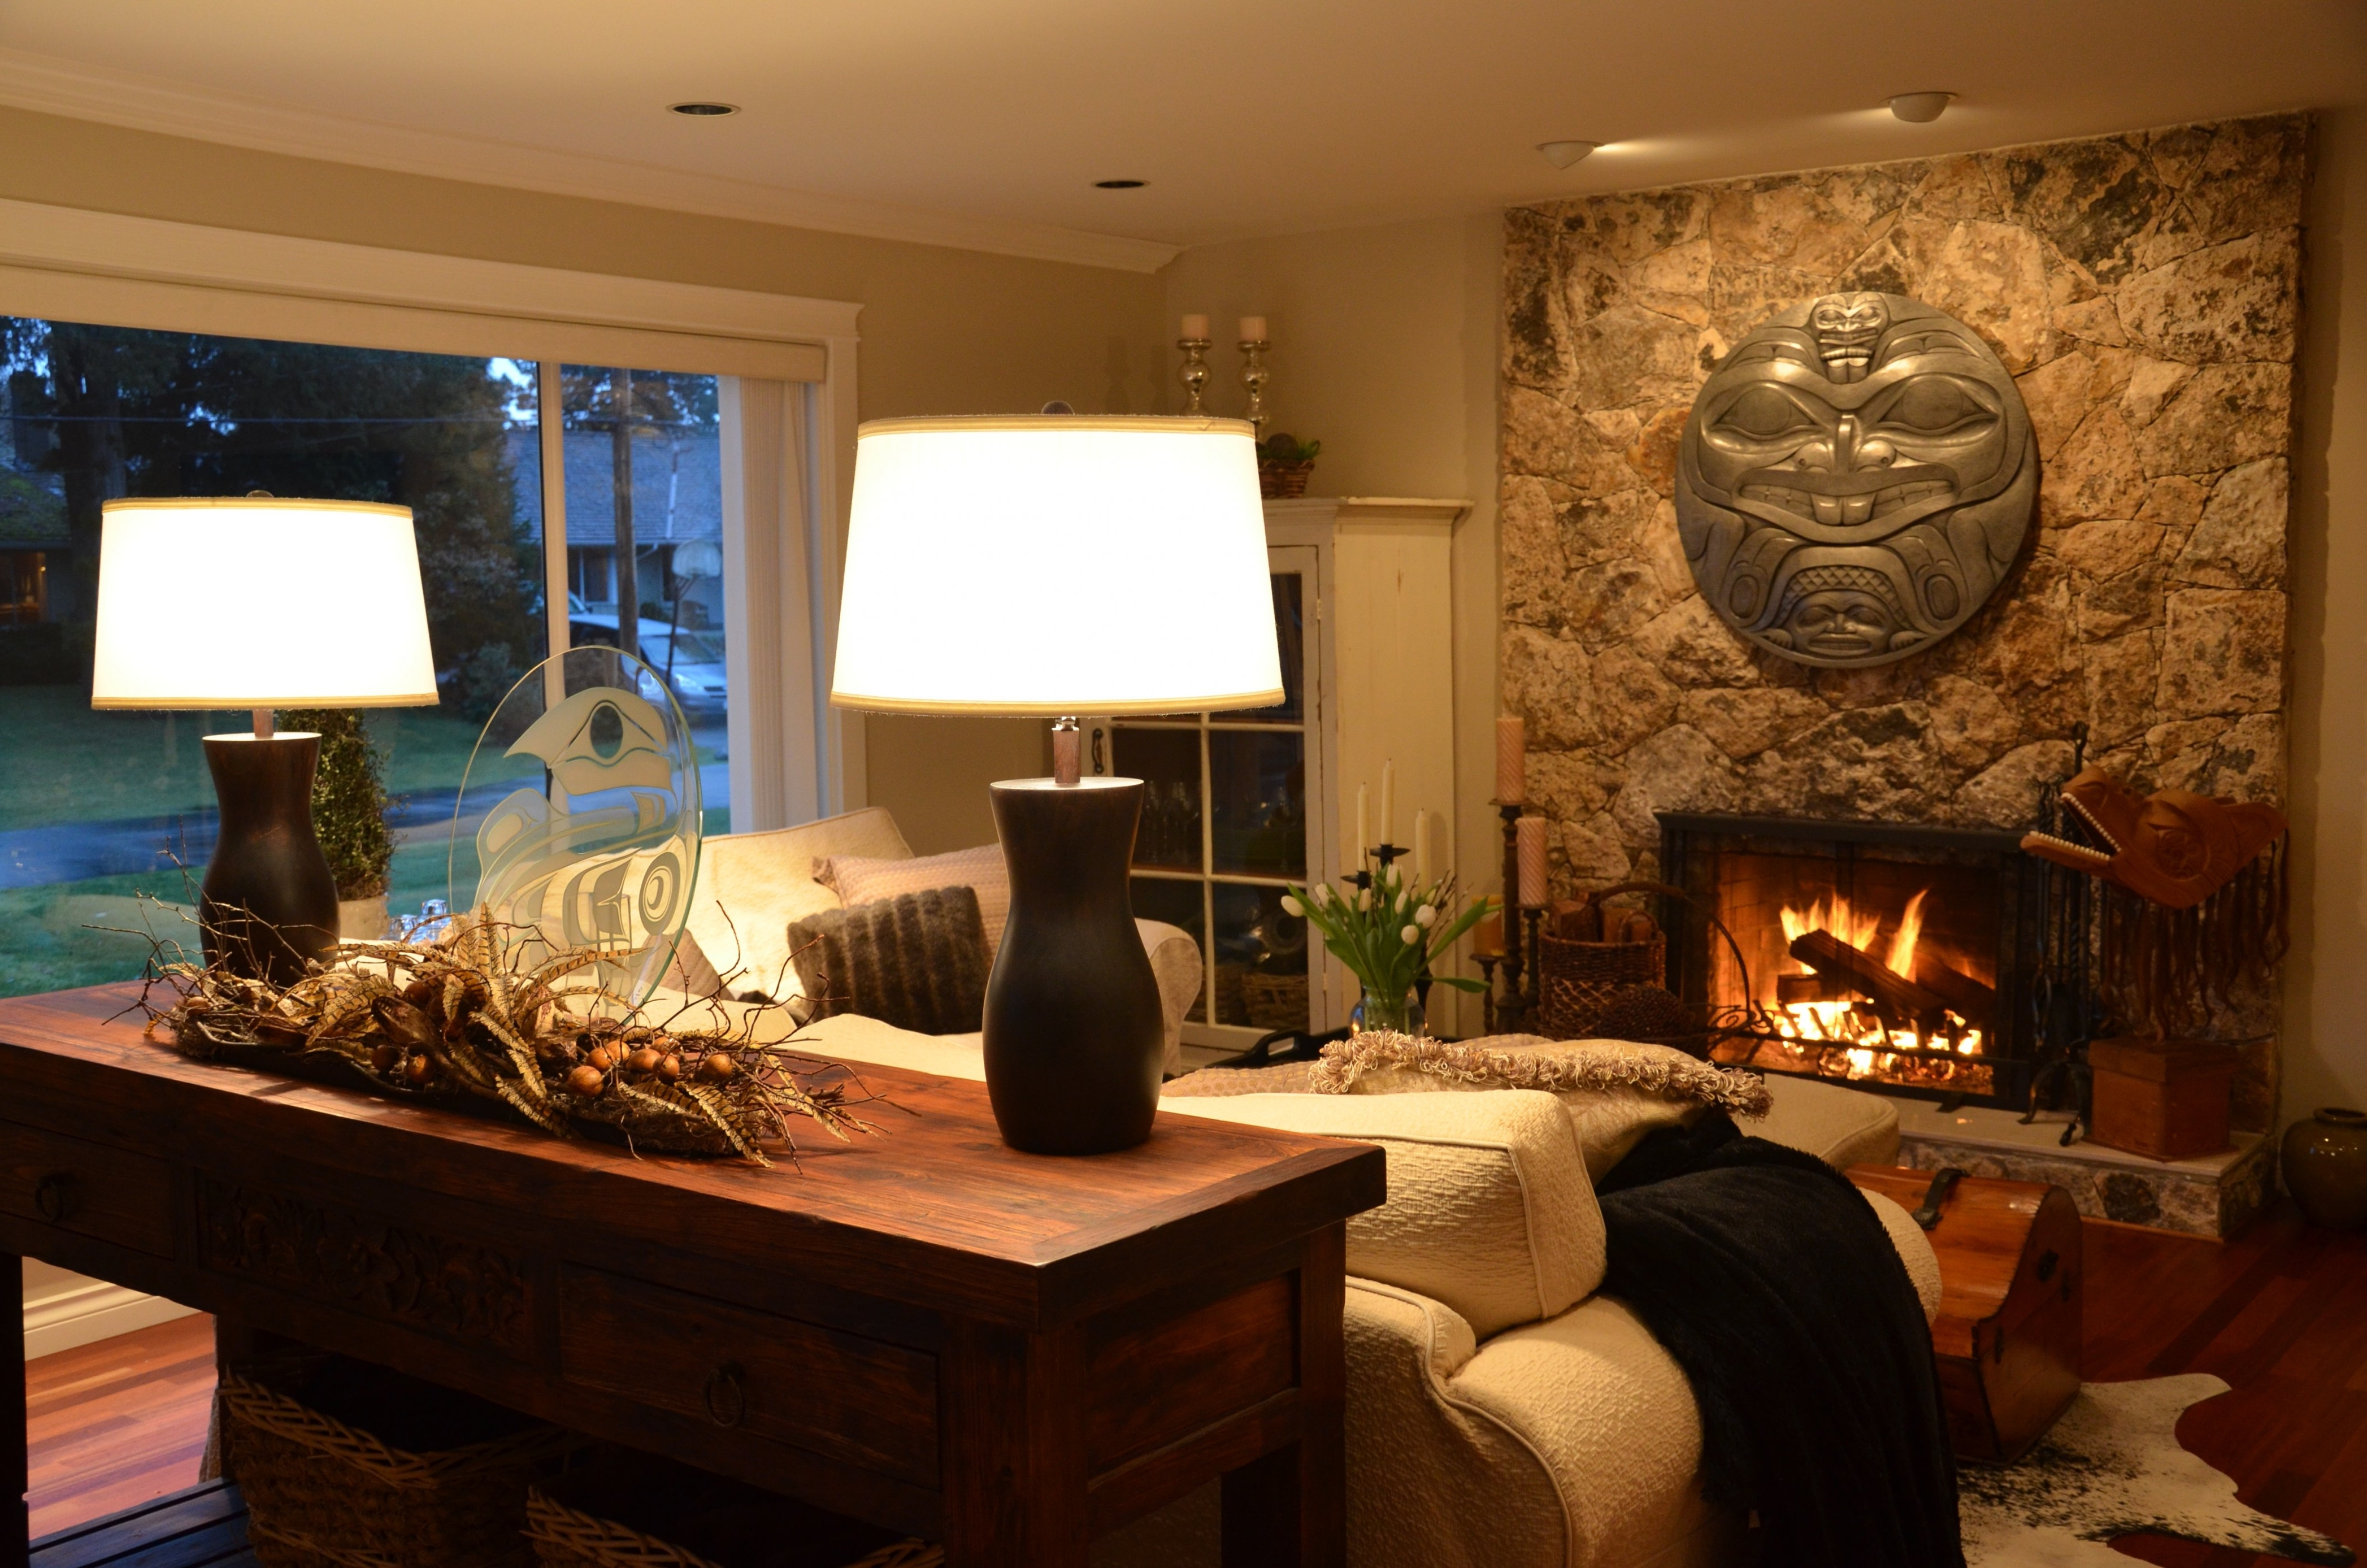 Fashionable Rustic Living Room Table Lamps Pertaining To Rustic Living Room Table Lamps (View 3 of 20)